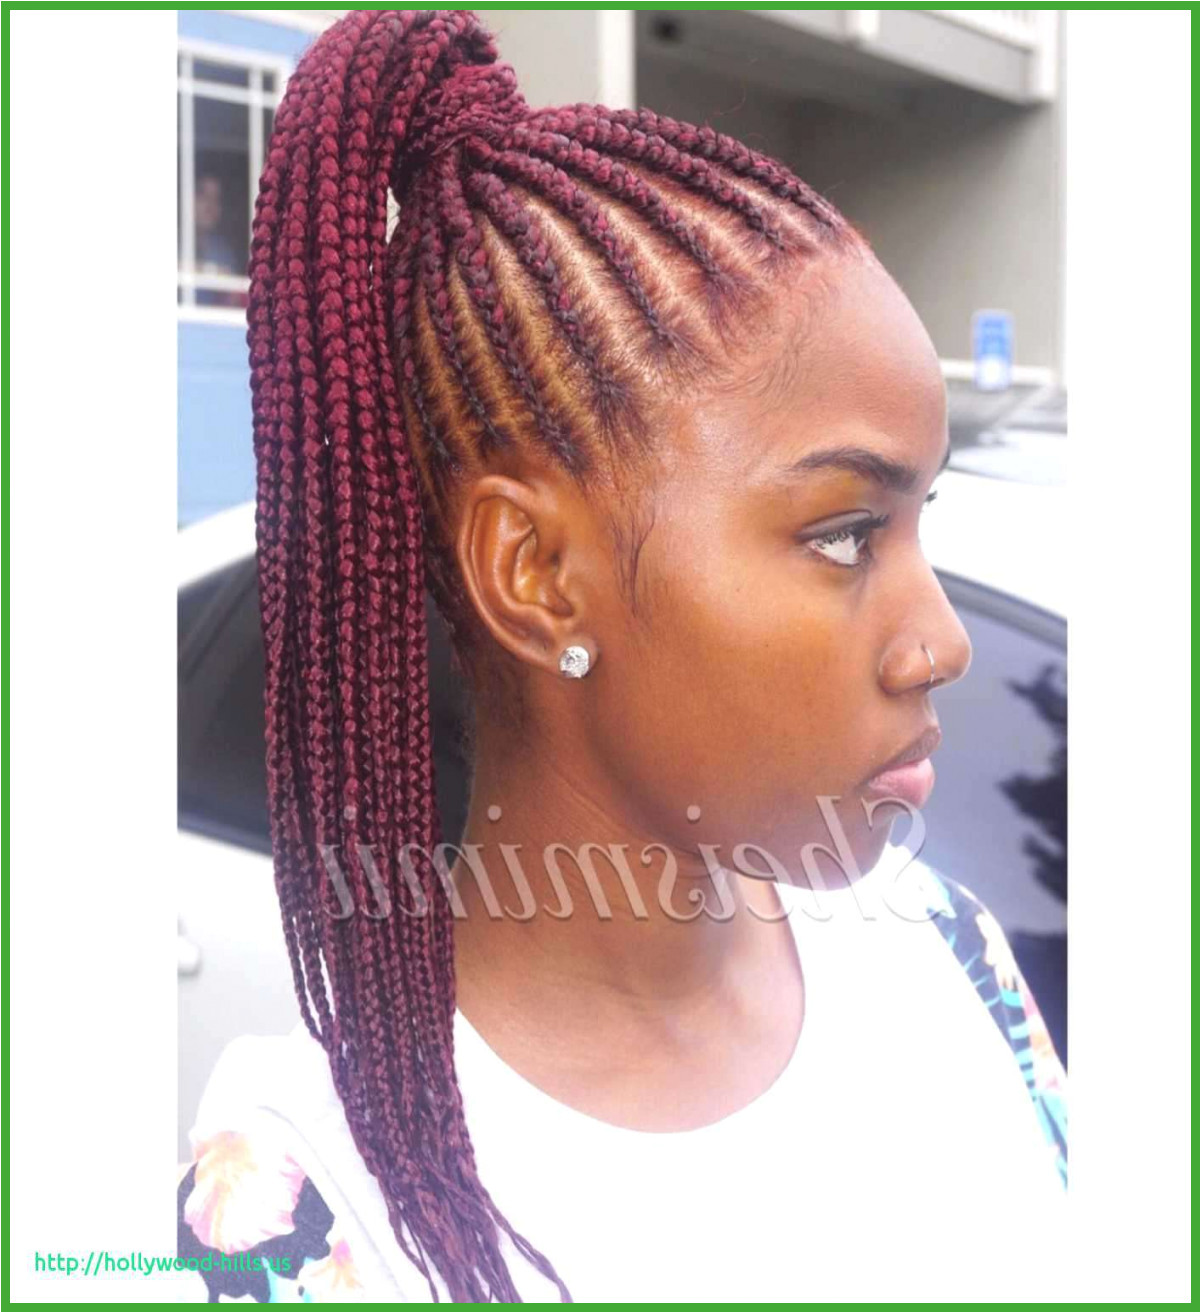 New Dreadlocks Hairstyles Hairstyles for Locs Hairstyles with Dreadlocks New Dread Frisuren 0d